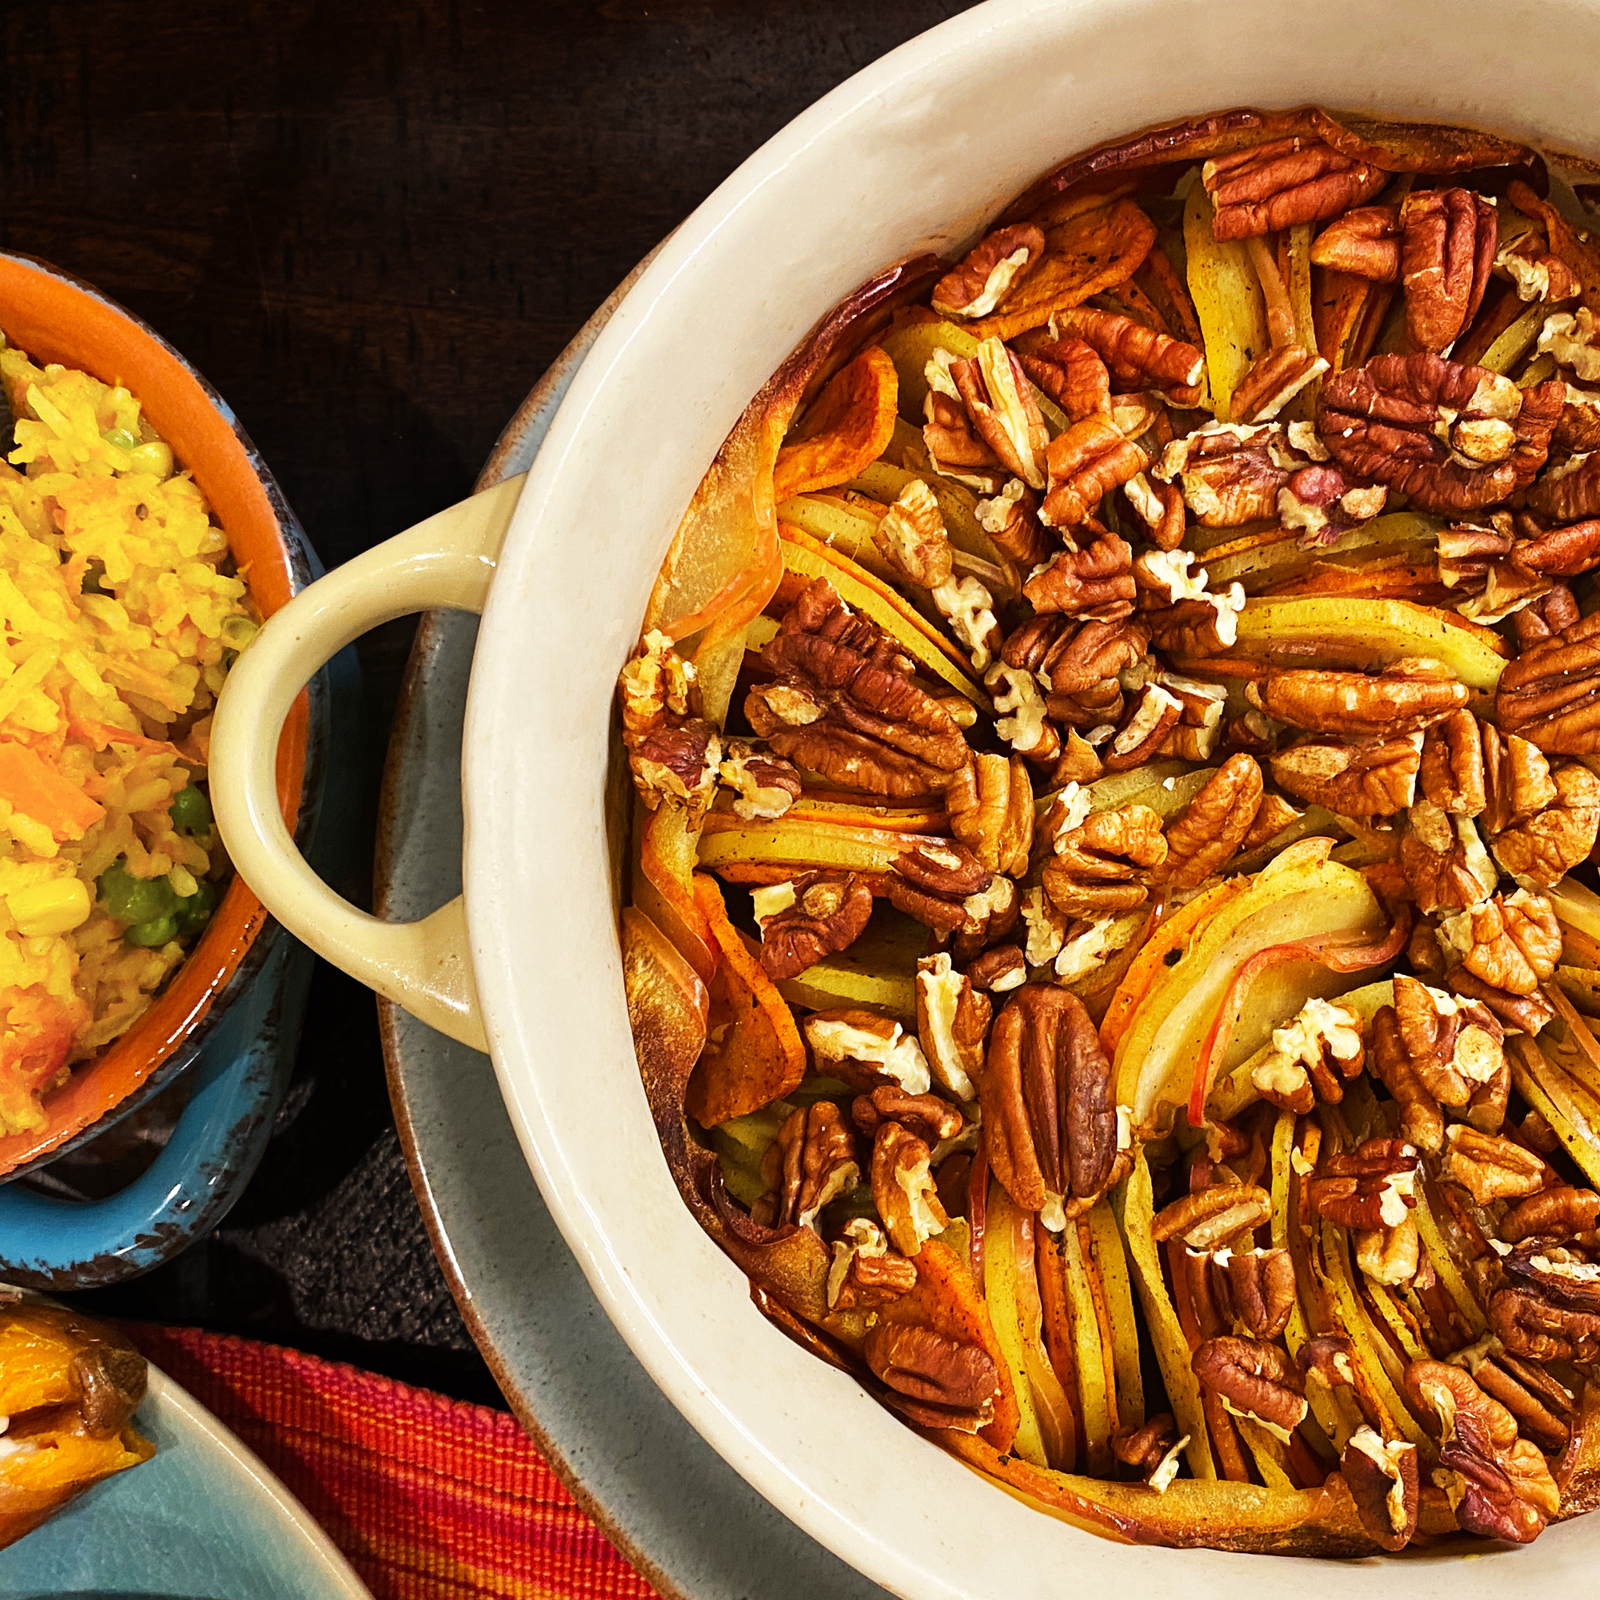 Baked sweet potatoes with apples and pecans